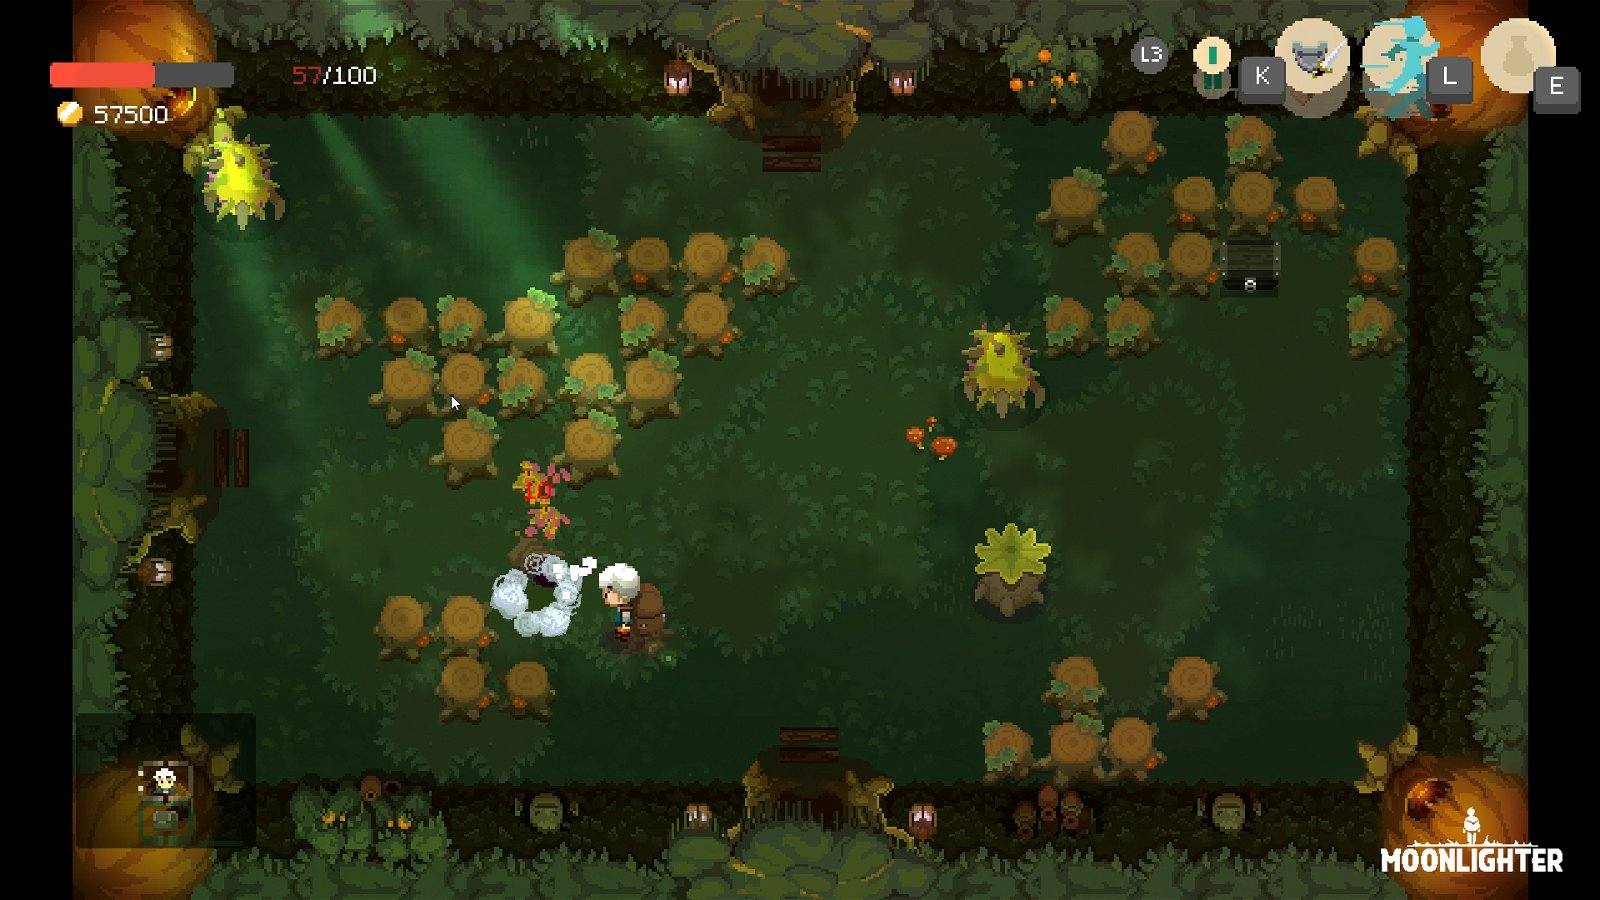 Moonlighter Review - Fire Sale 4